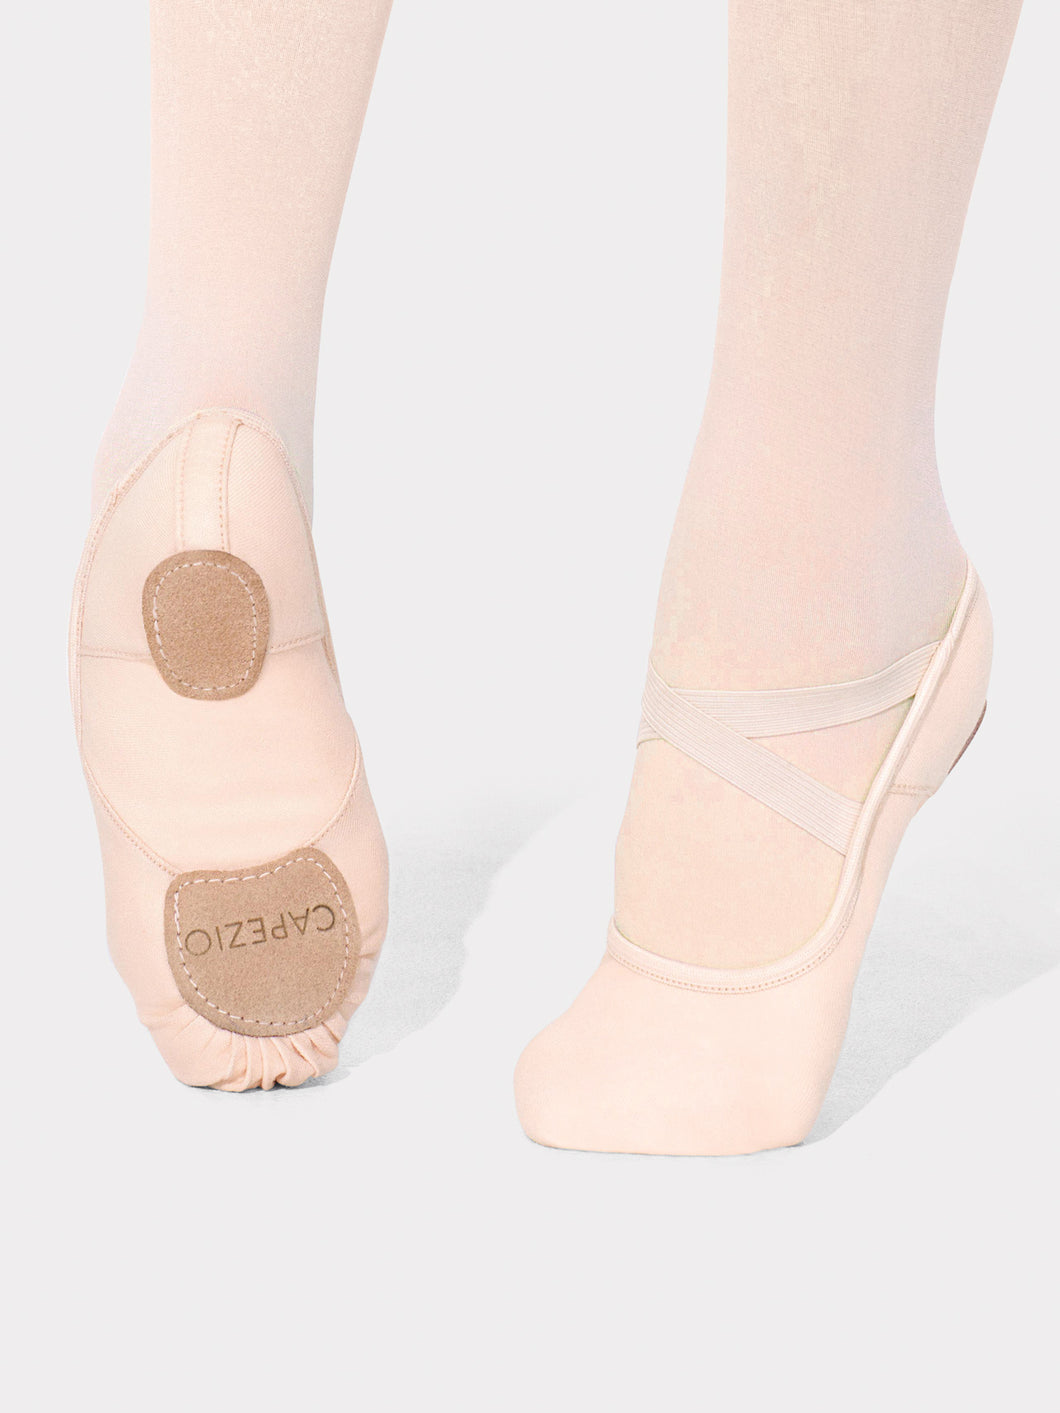 Hanami Canvas Ballet Slippers - Light Pink